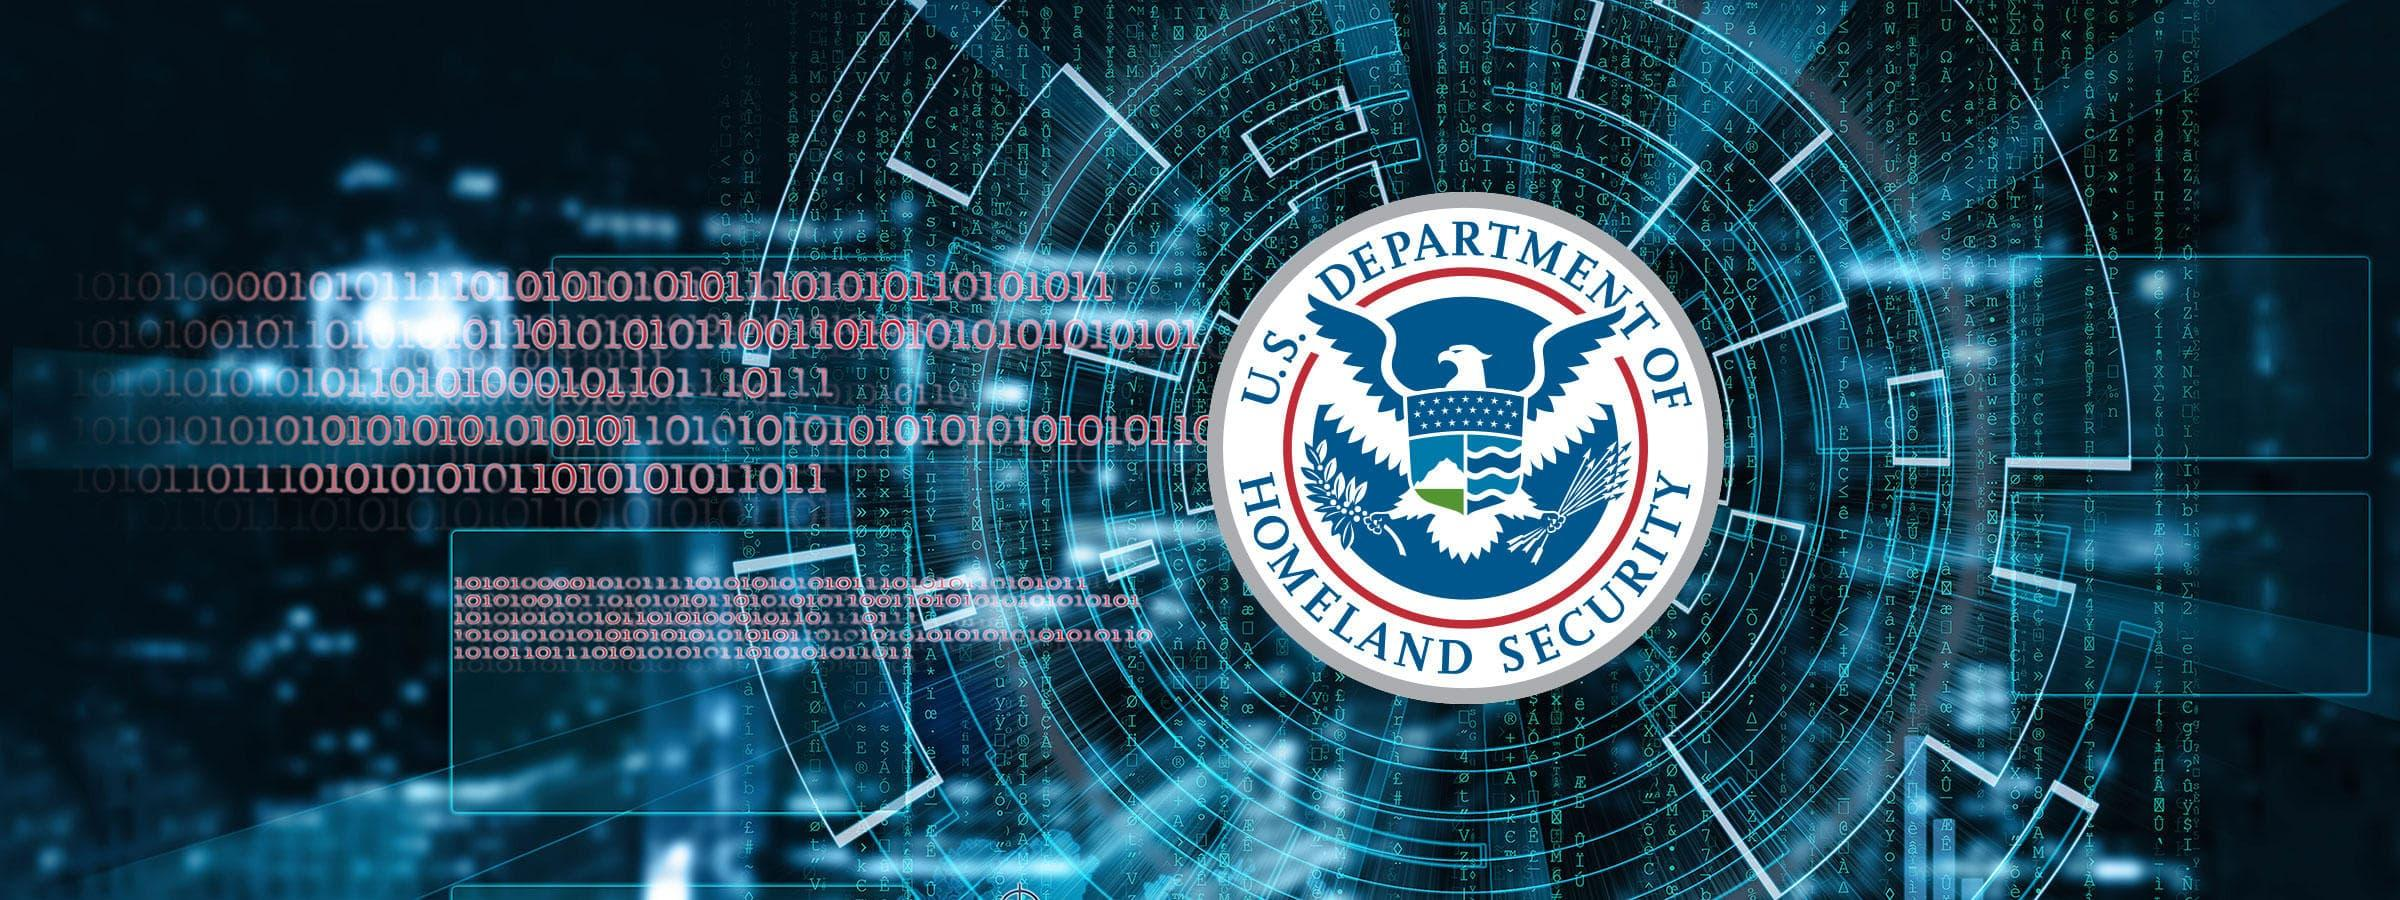 Cybersecurity and Homeland Security